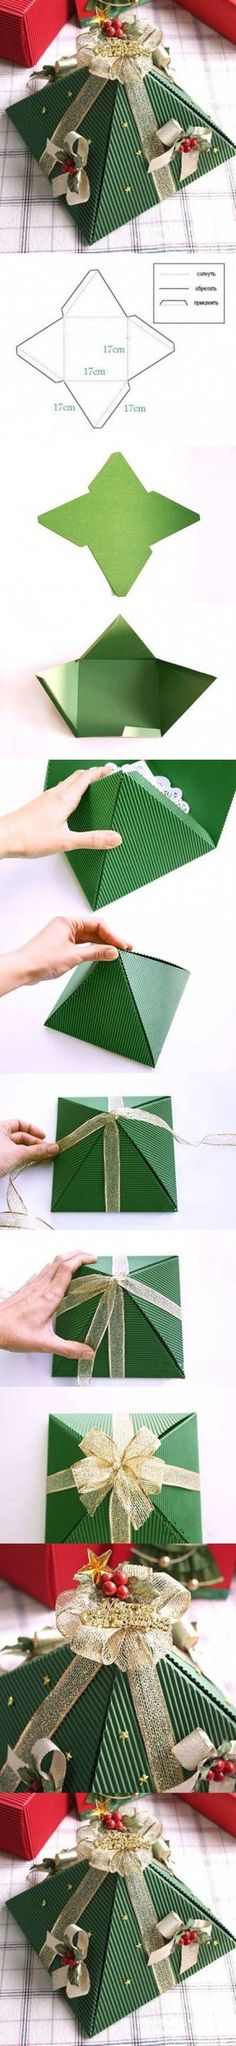 DIY Pyramid Christmas Box DIY Projects